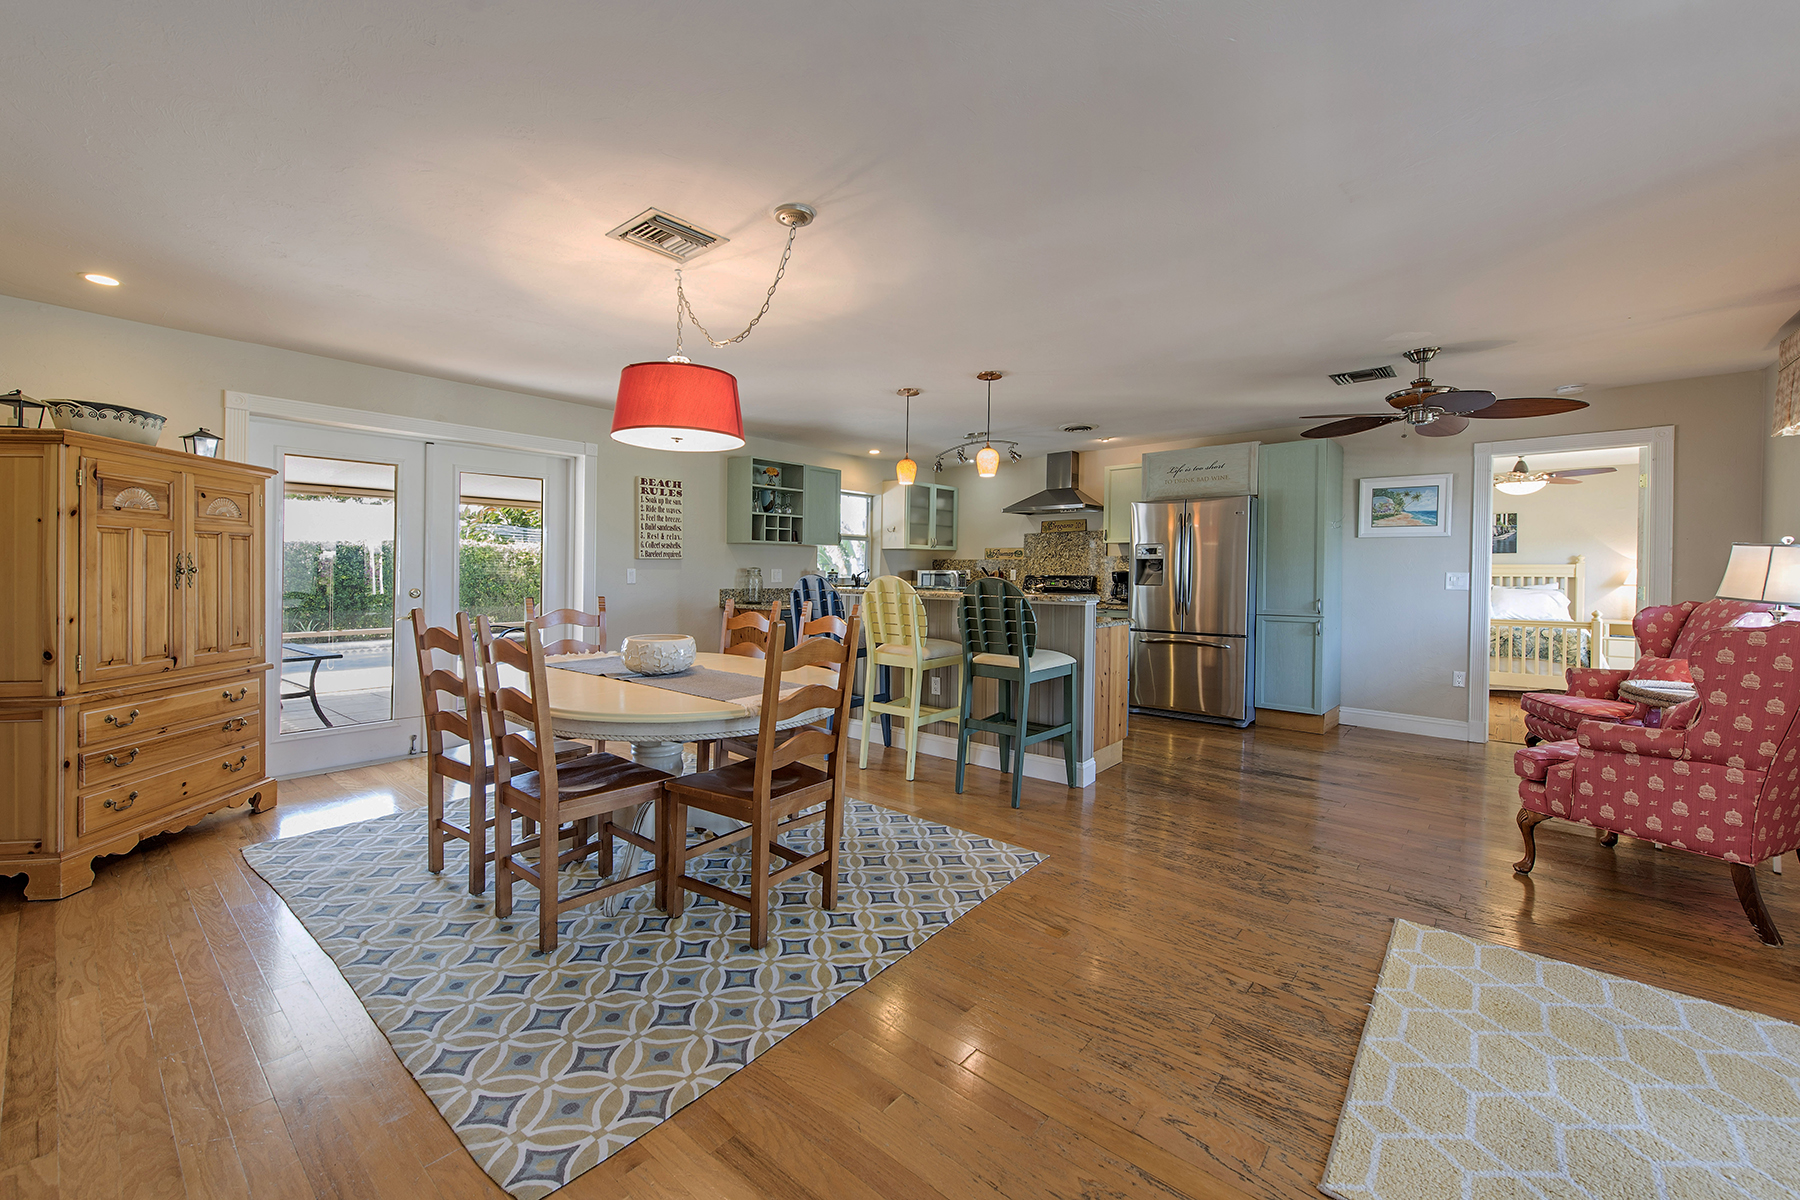 Single Family Home for Sale at NAPLES PARK 699 99th Ave N Naples, Florida, 34108 United States